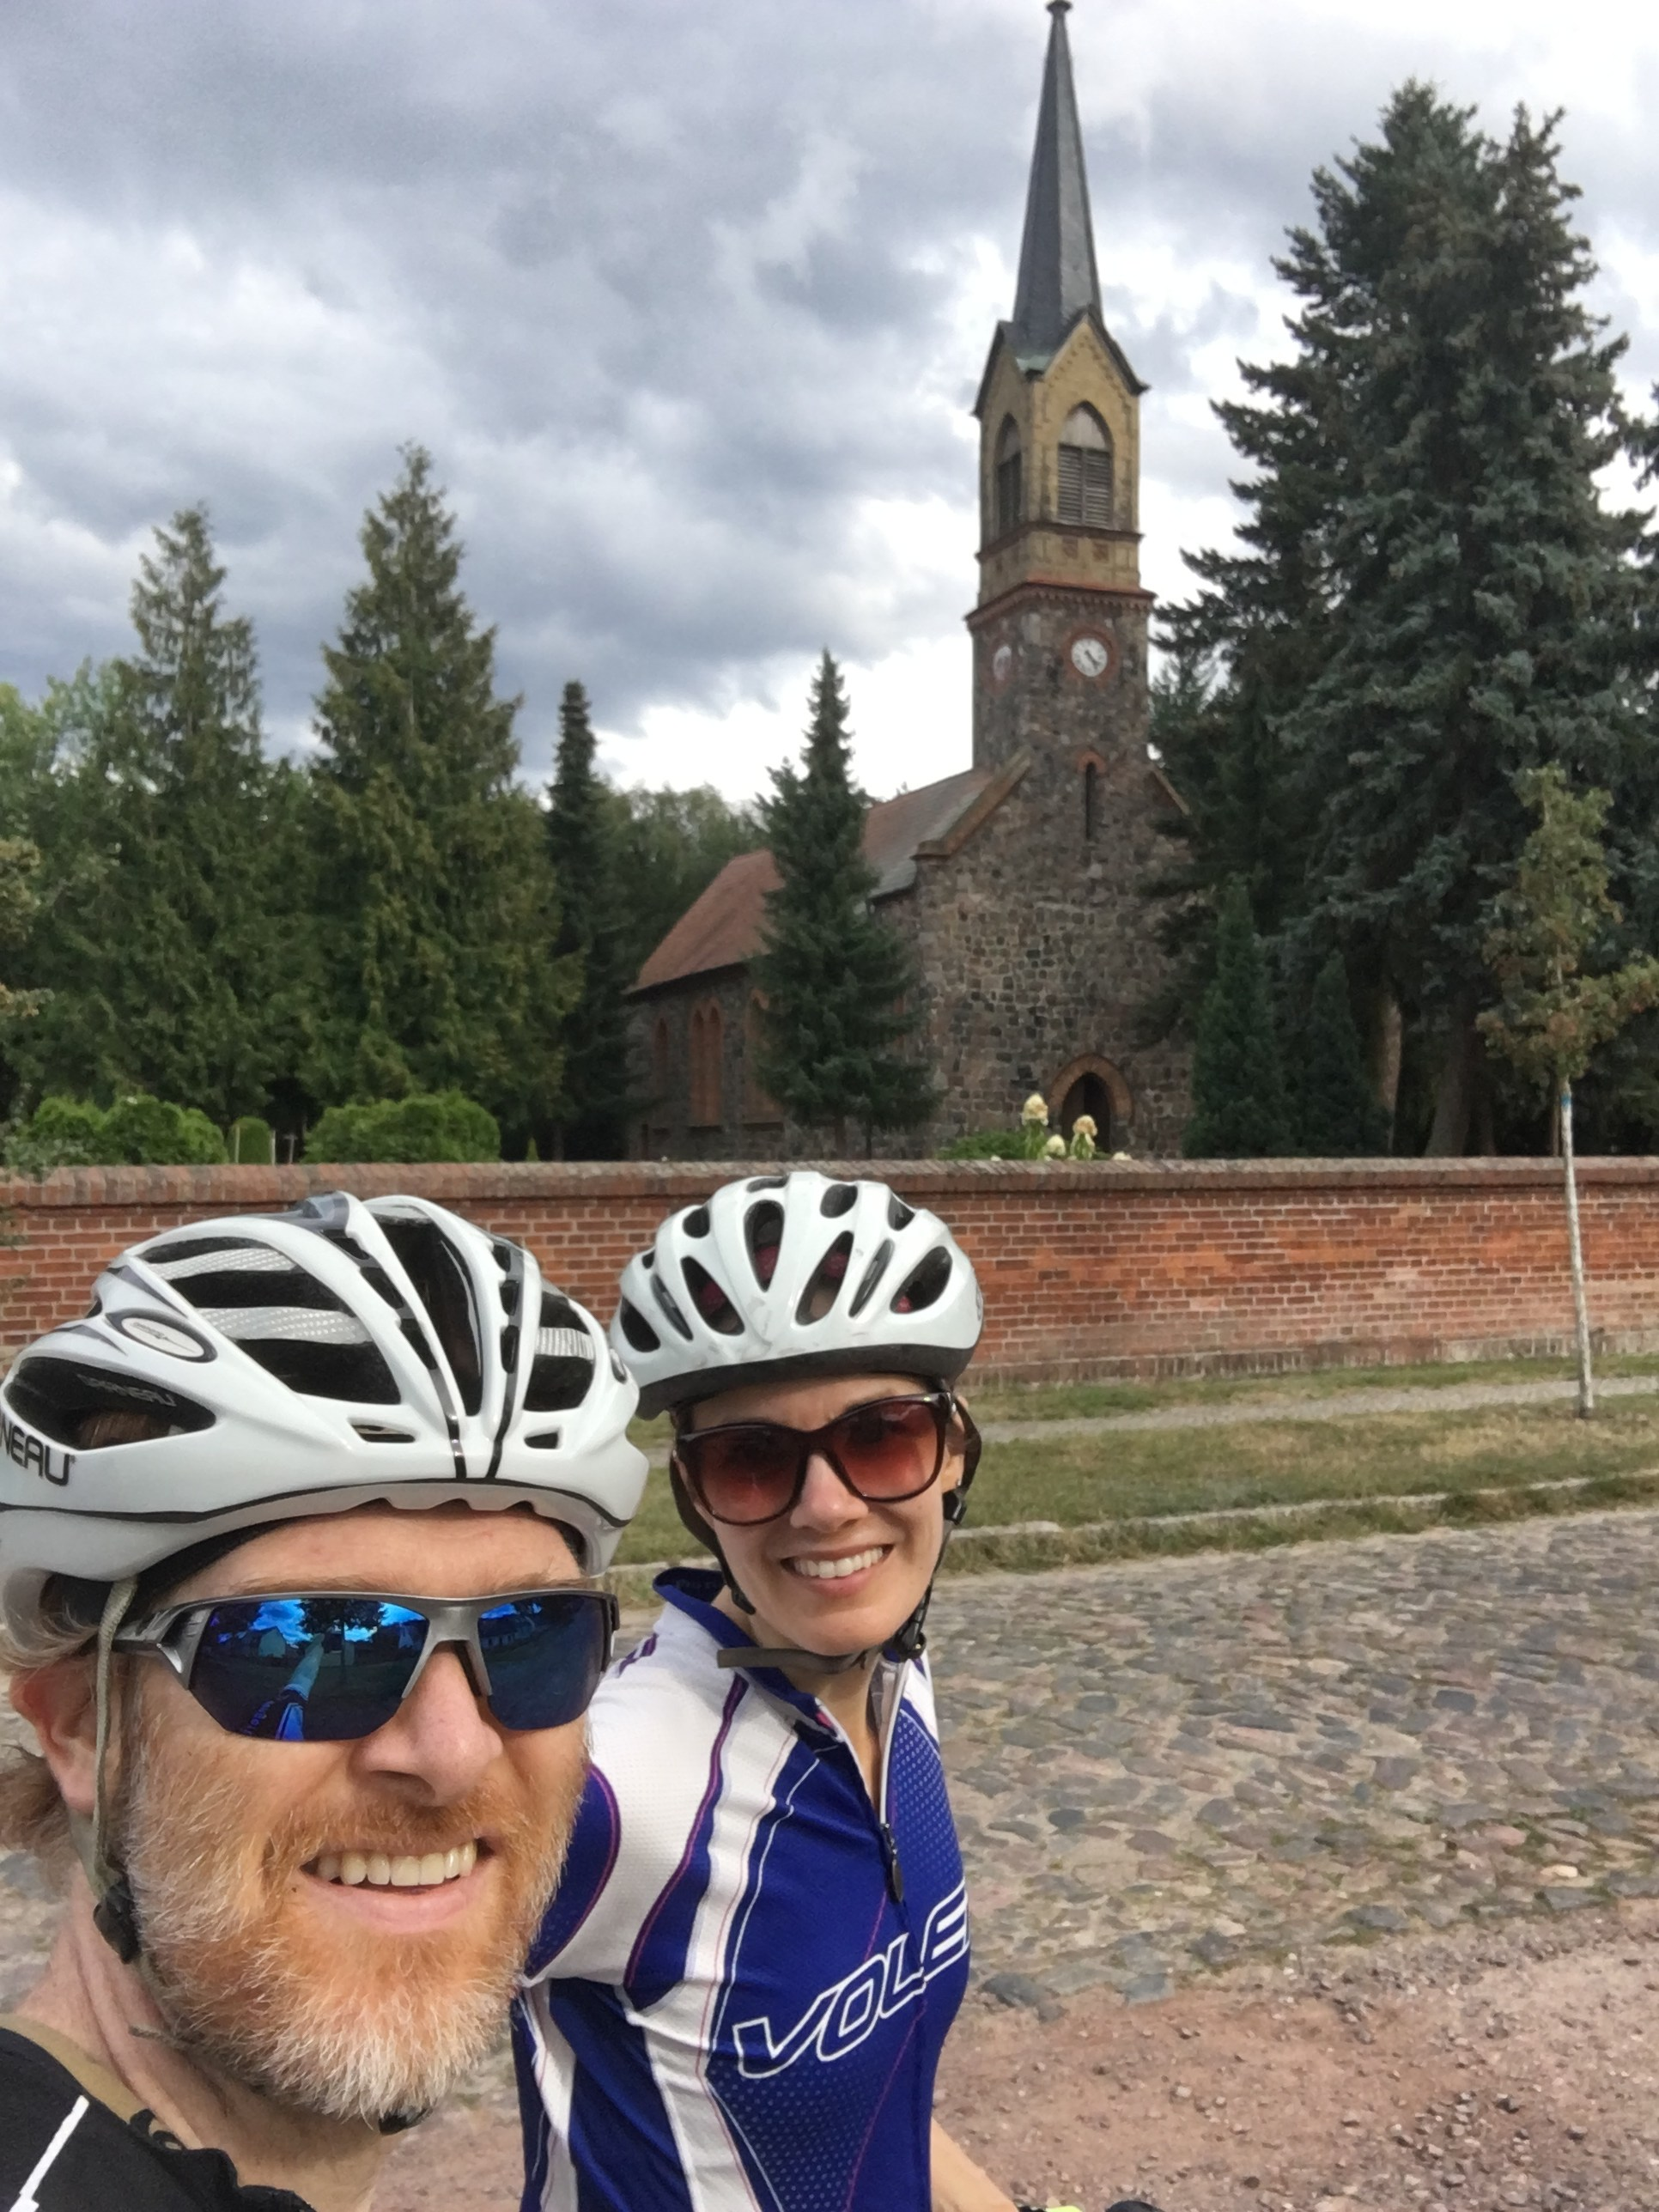 We celebrated our 14th wedding anniversary with a long bike ride through Brandenburg (the countryside around Berlin). During this year we are especially thankful for opportunities for rejuvenation and to enjoy the refreshing beauty of God's creation.